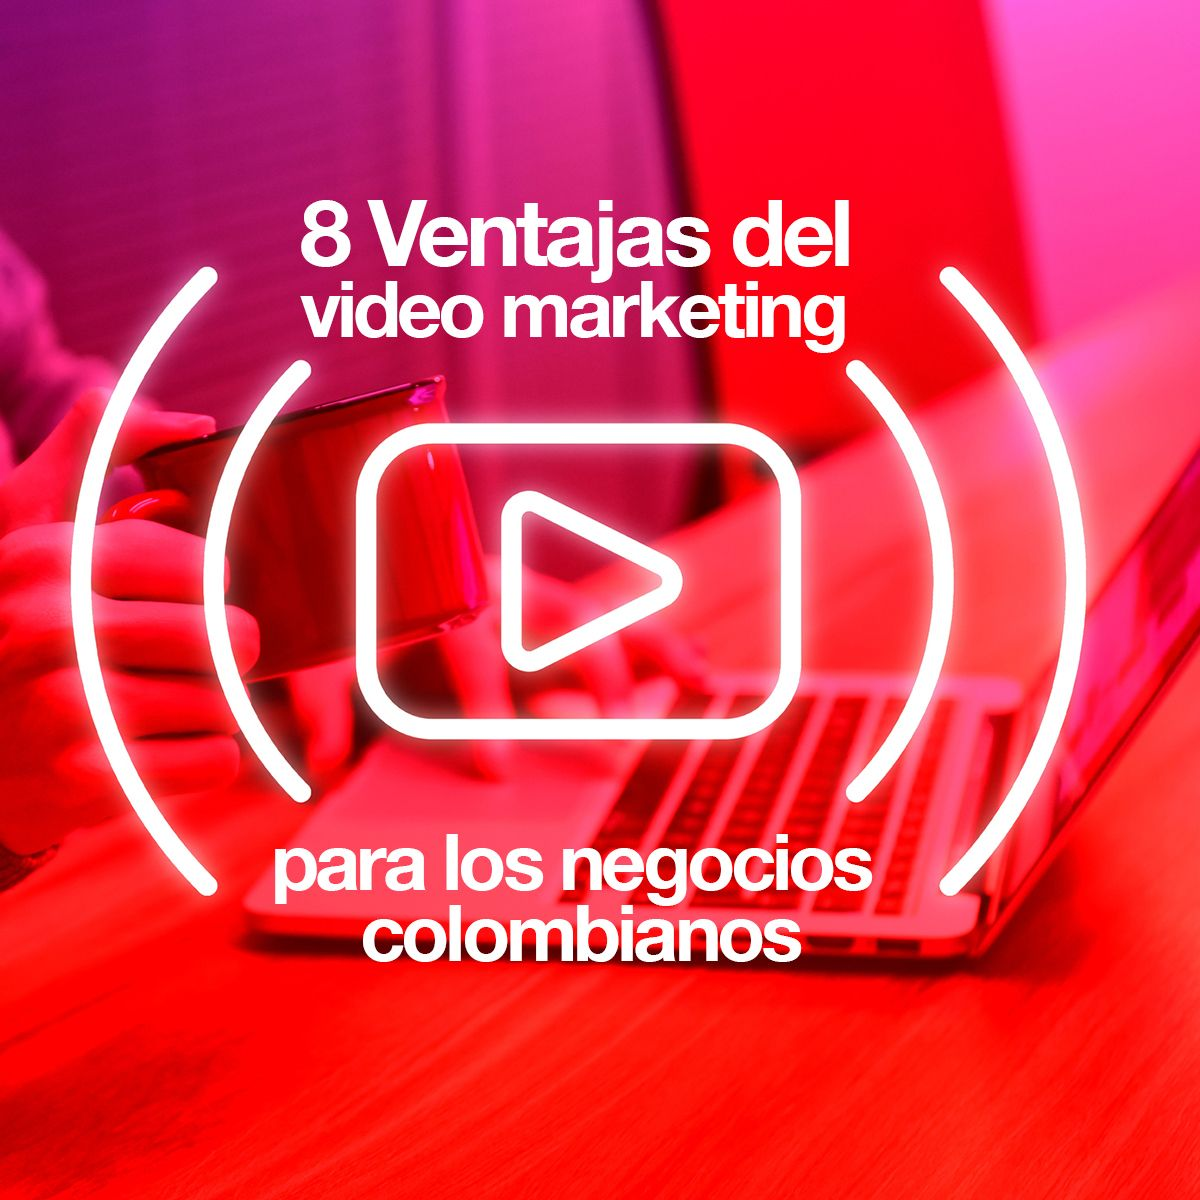 8 Ventajas del video marketing para los negocios en colombia